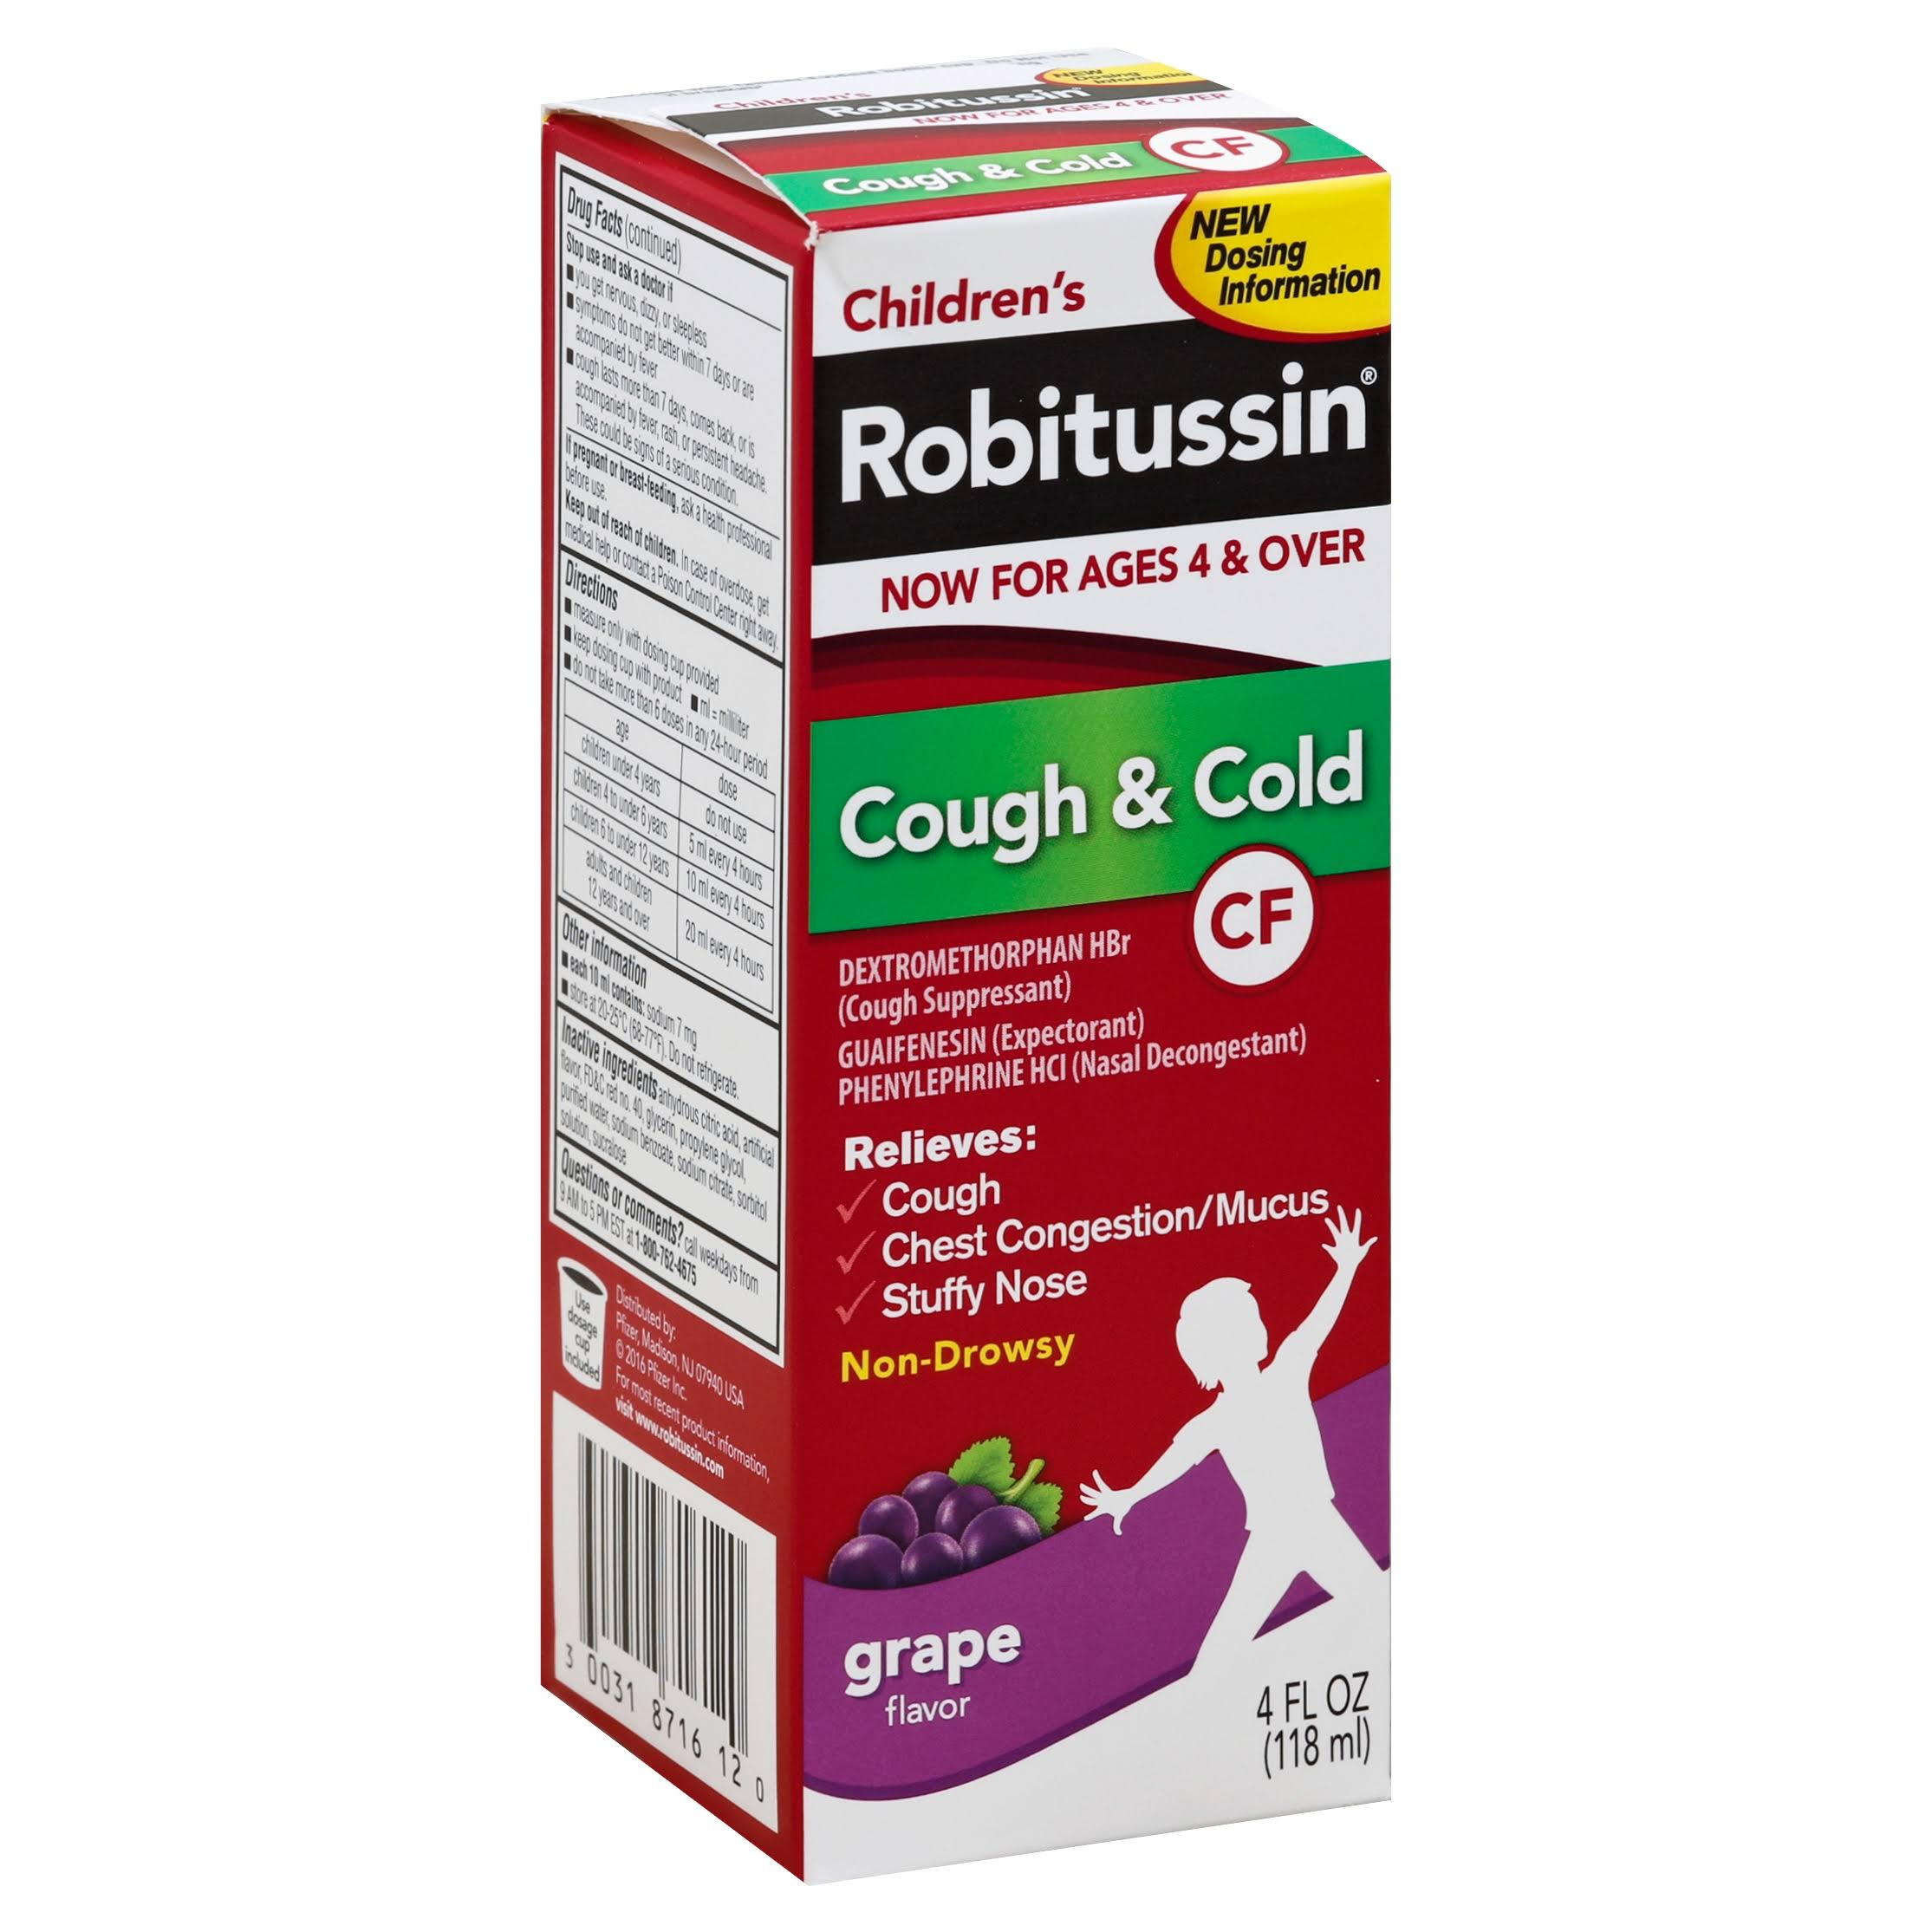 Robitussin Children's Cough & Cold Relief Syrup - Grape, 118ml